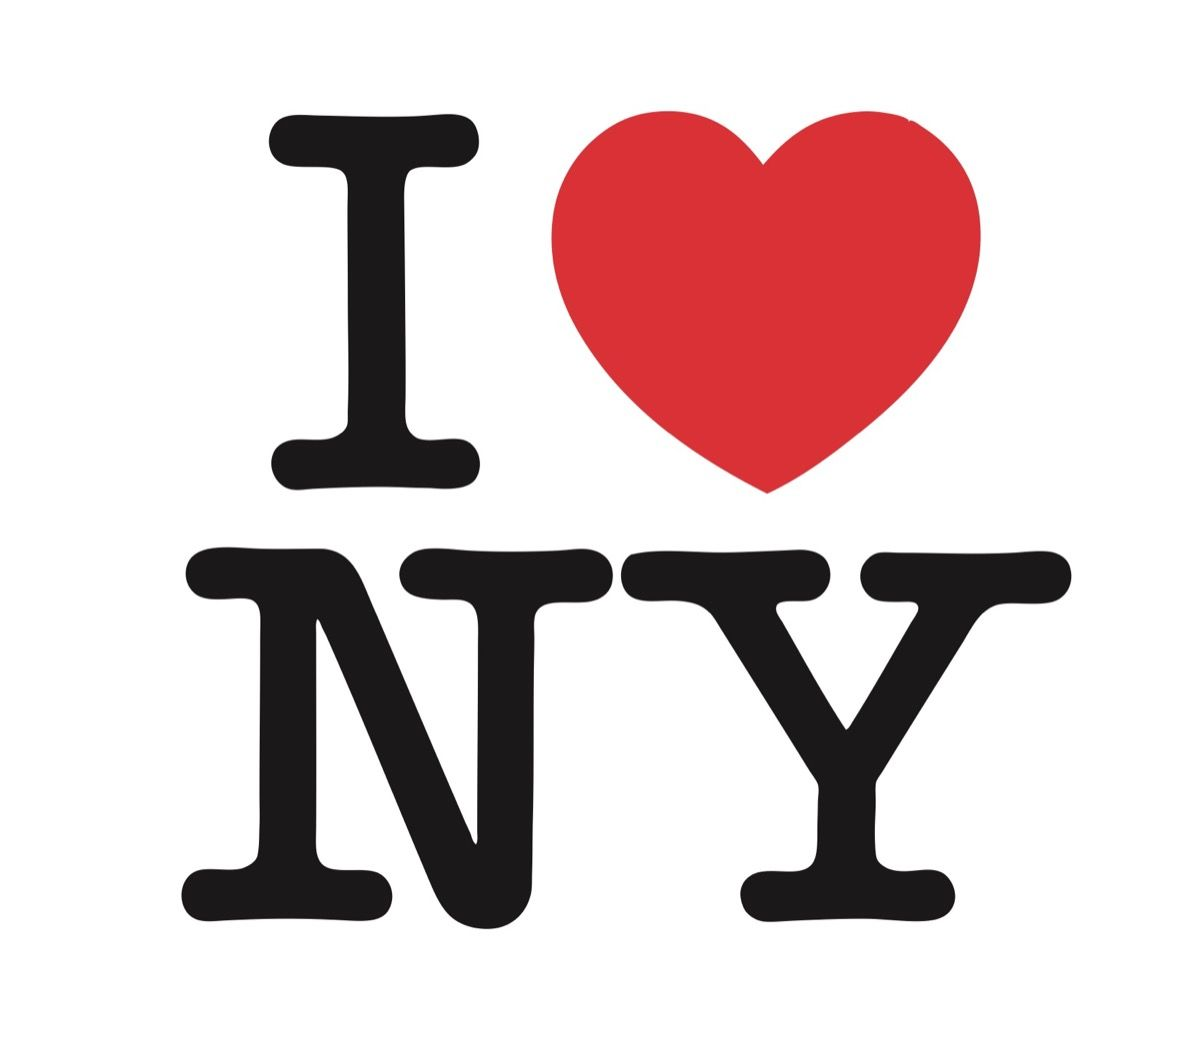 How Milton Glaser\'s Iconic Logo Made the World Love New York.